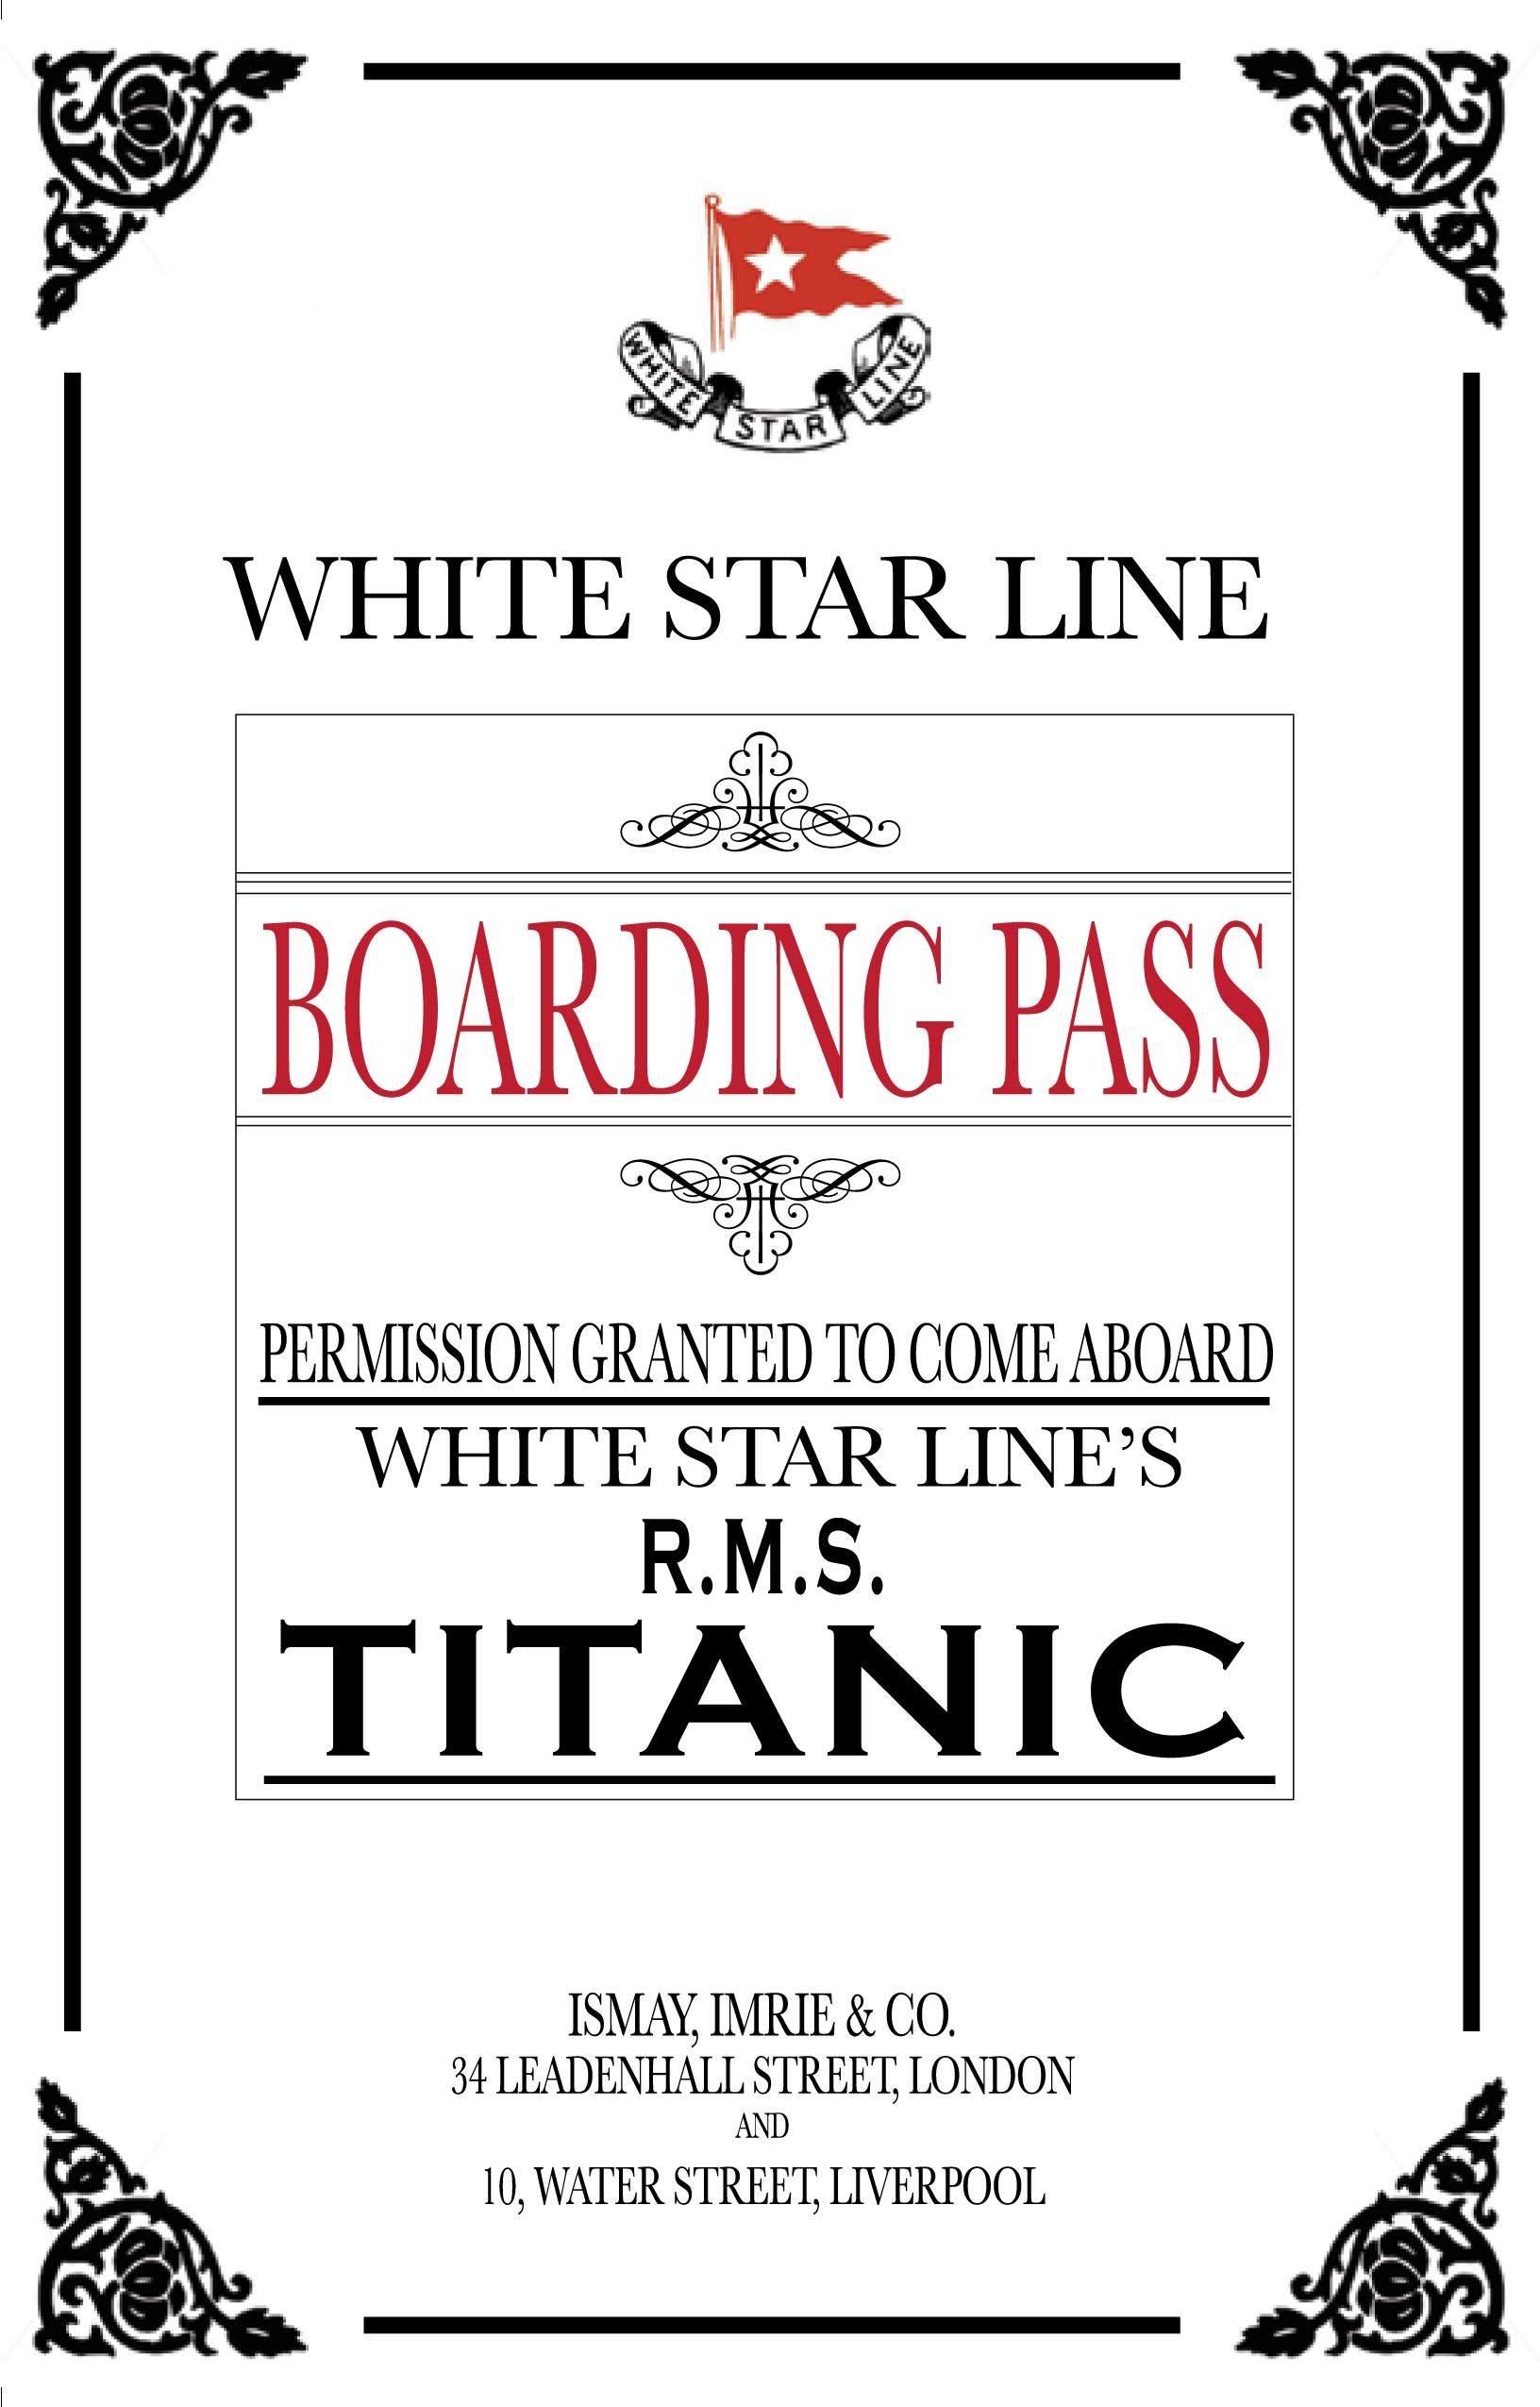 Titanic Dinner Party Invitations and Awards (yup, you read that